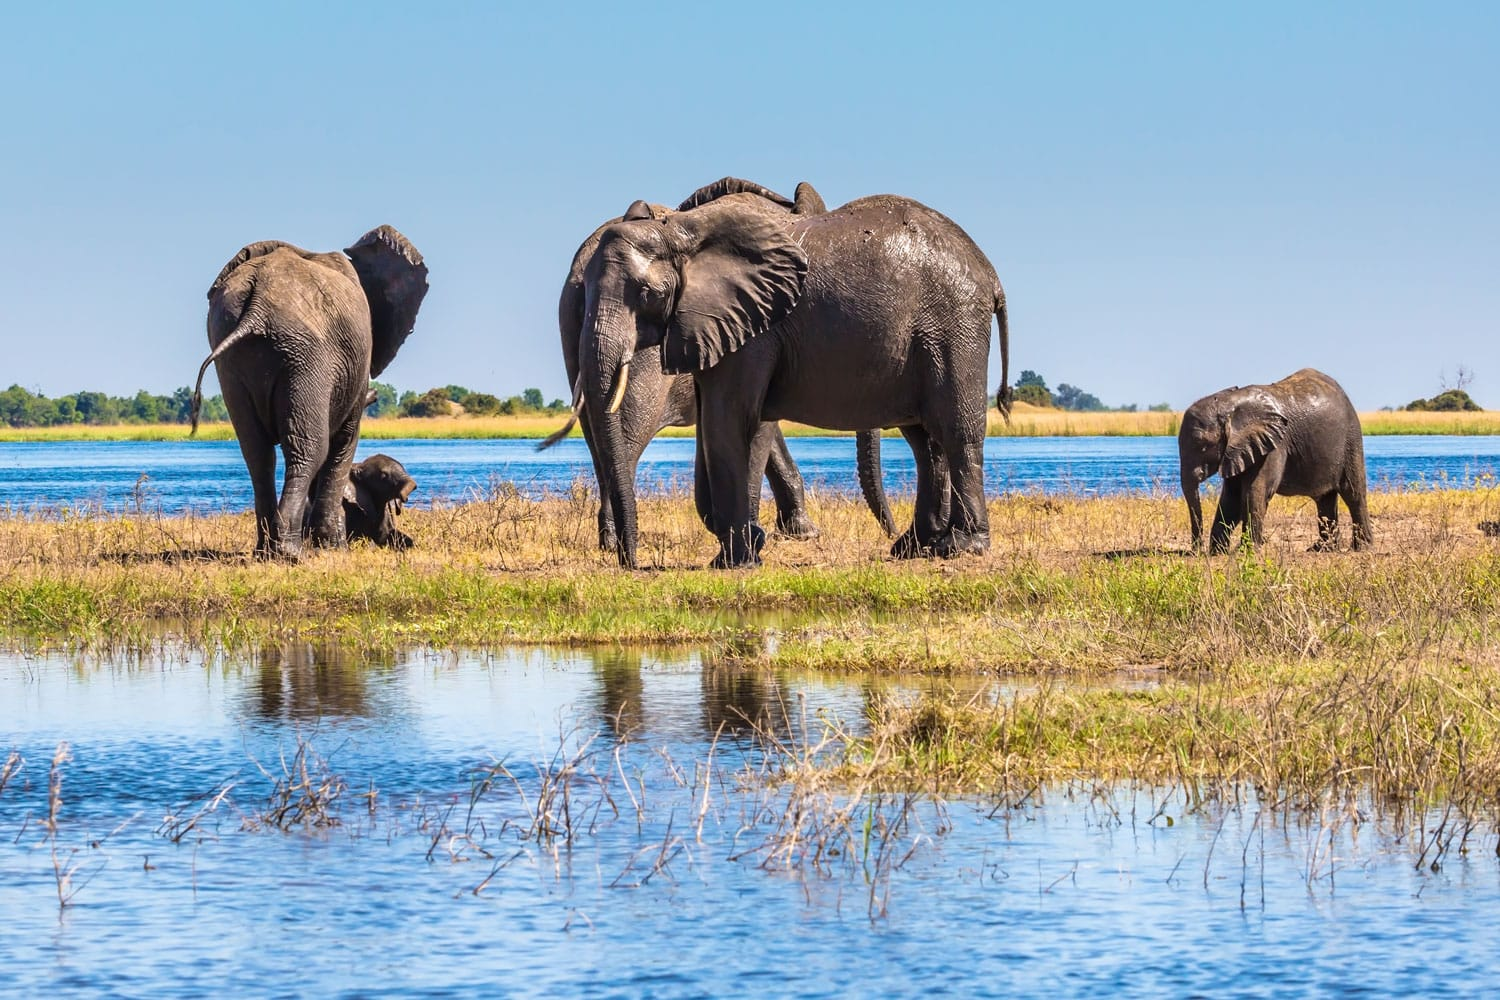 Herd of elephants adults and cubs crossing shallow water in The oldest national park in Botswana - Chobe National Park, Africa